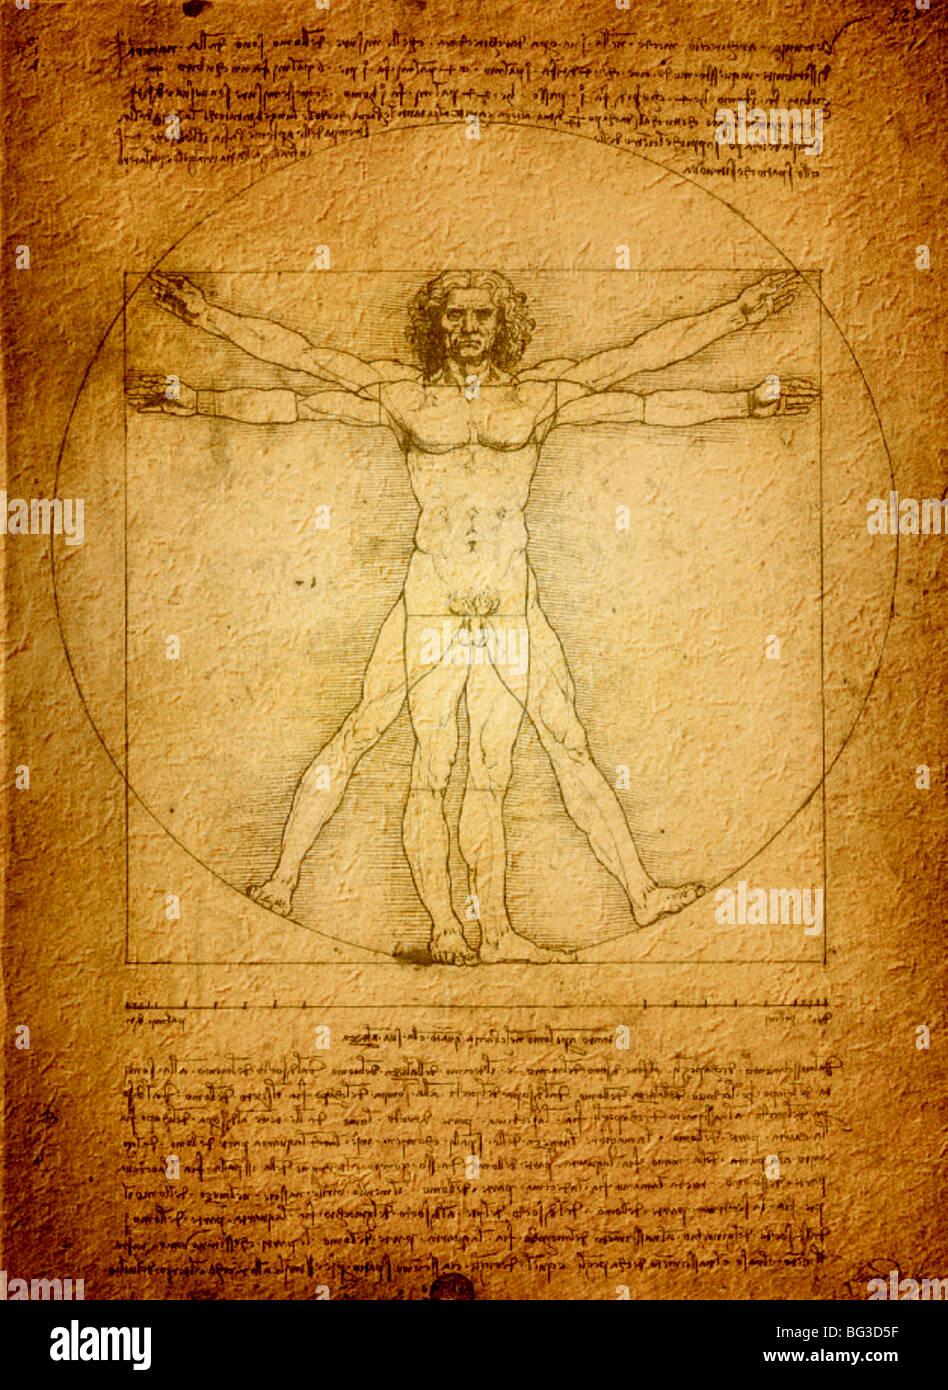 vitruvian man by leonardo da vinci in pen and ink 1490 stock photo royalty free image 27121067. Black Bedroom Furniture Sets. Home Design Ideas